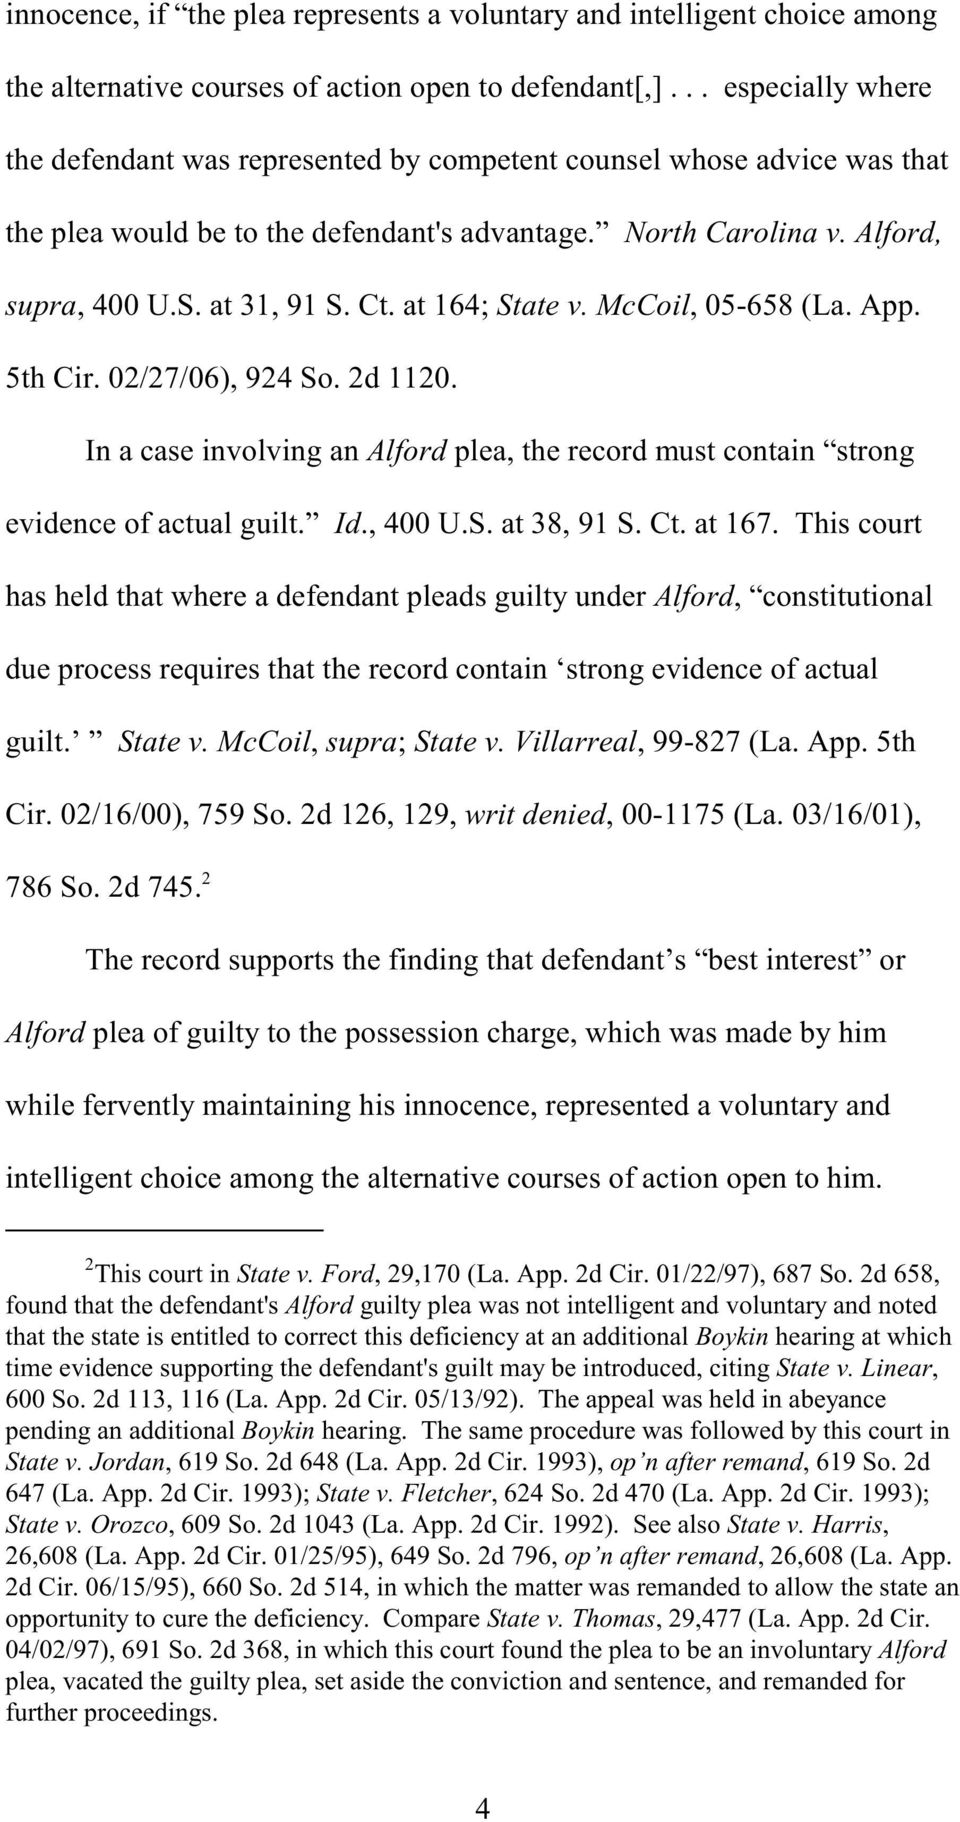 at 164; State v. McCoil, 05-658 (La. App. 5th Cir. 02/27/06), 924 So. 2d 1120. In a case involving an Alford plea, the record must contain strong evidence of actual guilt. Id., 400 U.S. at 38, 91 S.